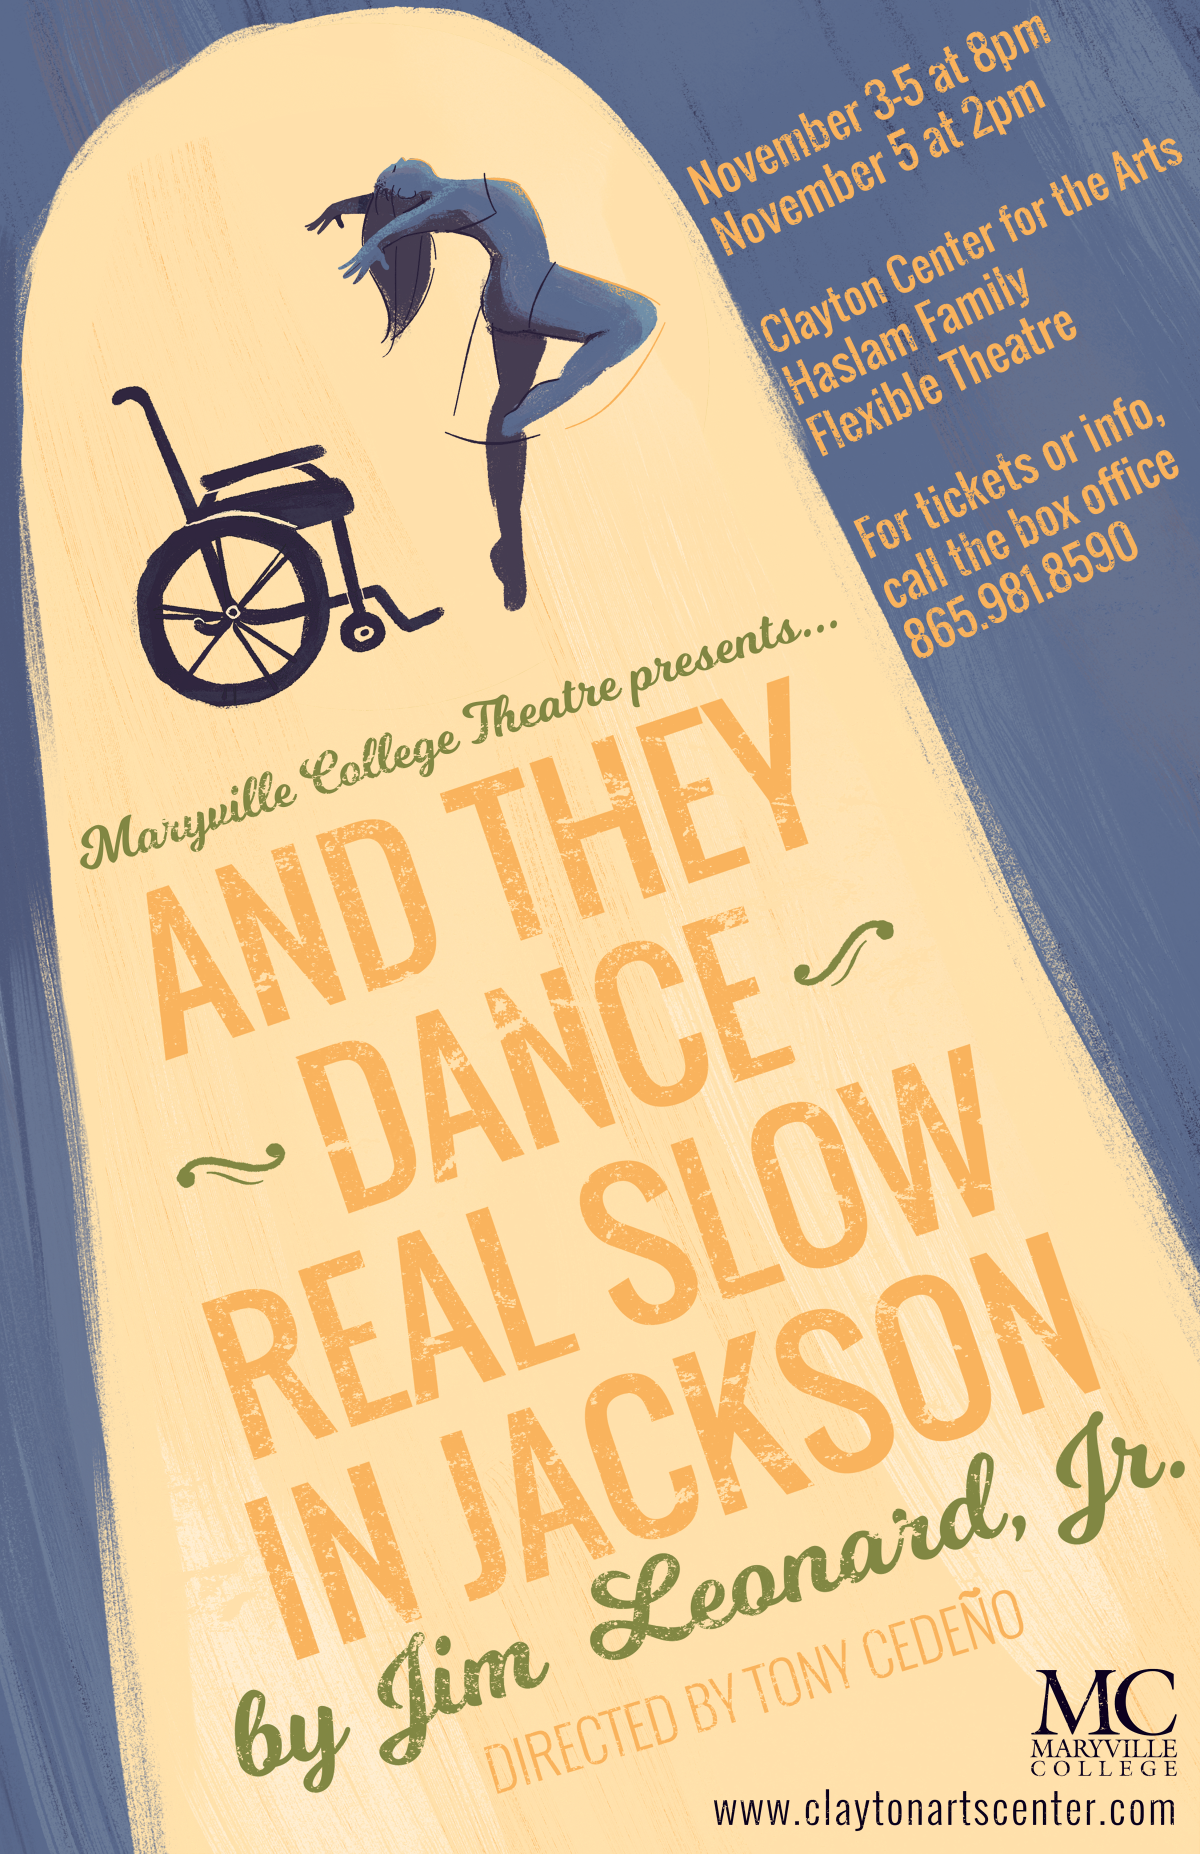 and they dance real slow in jackson